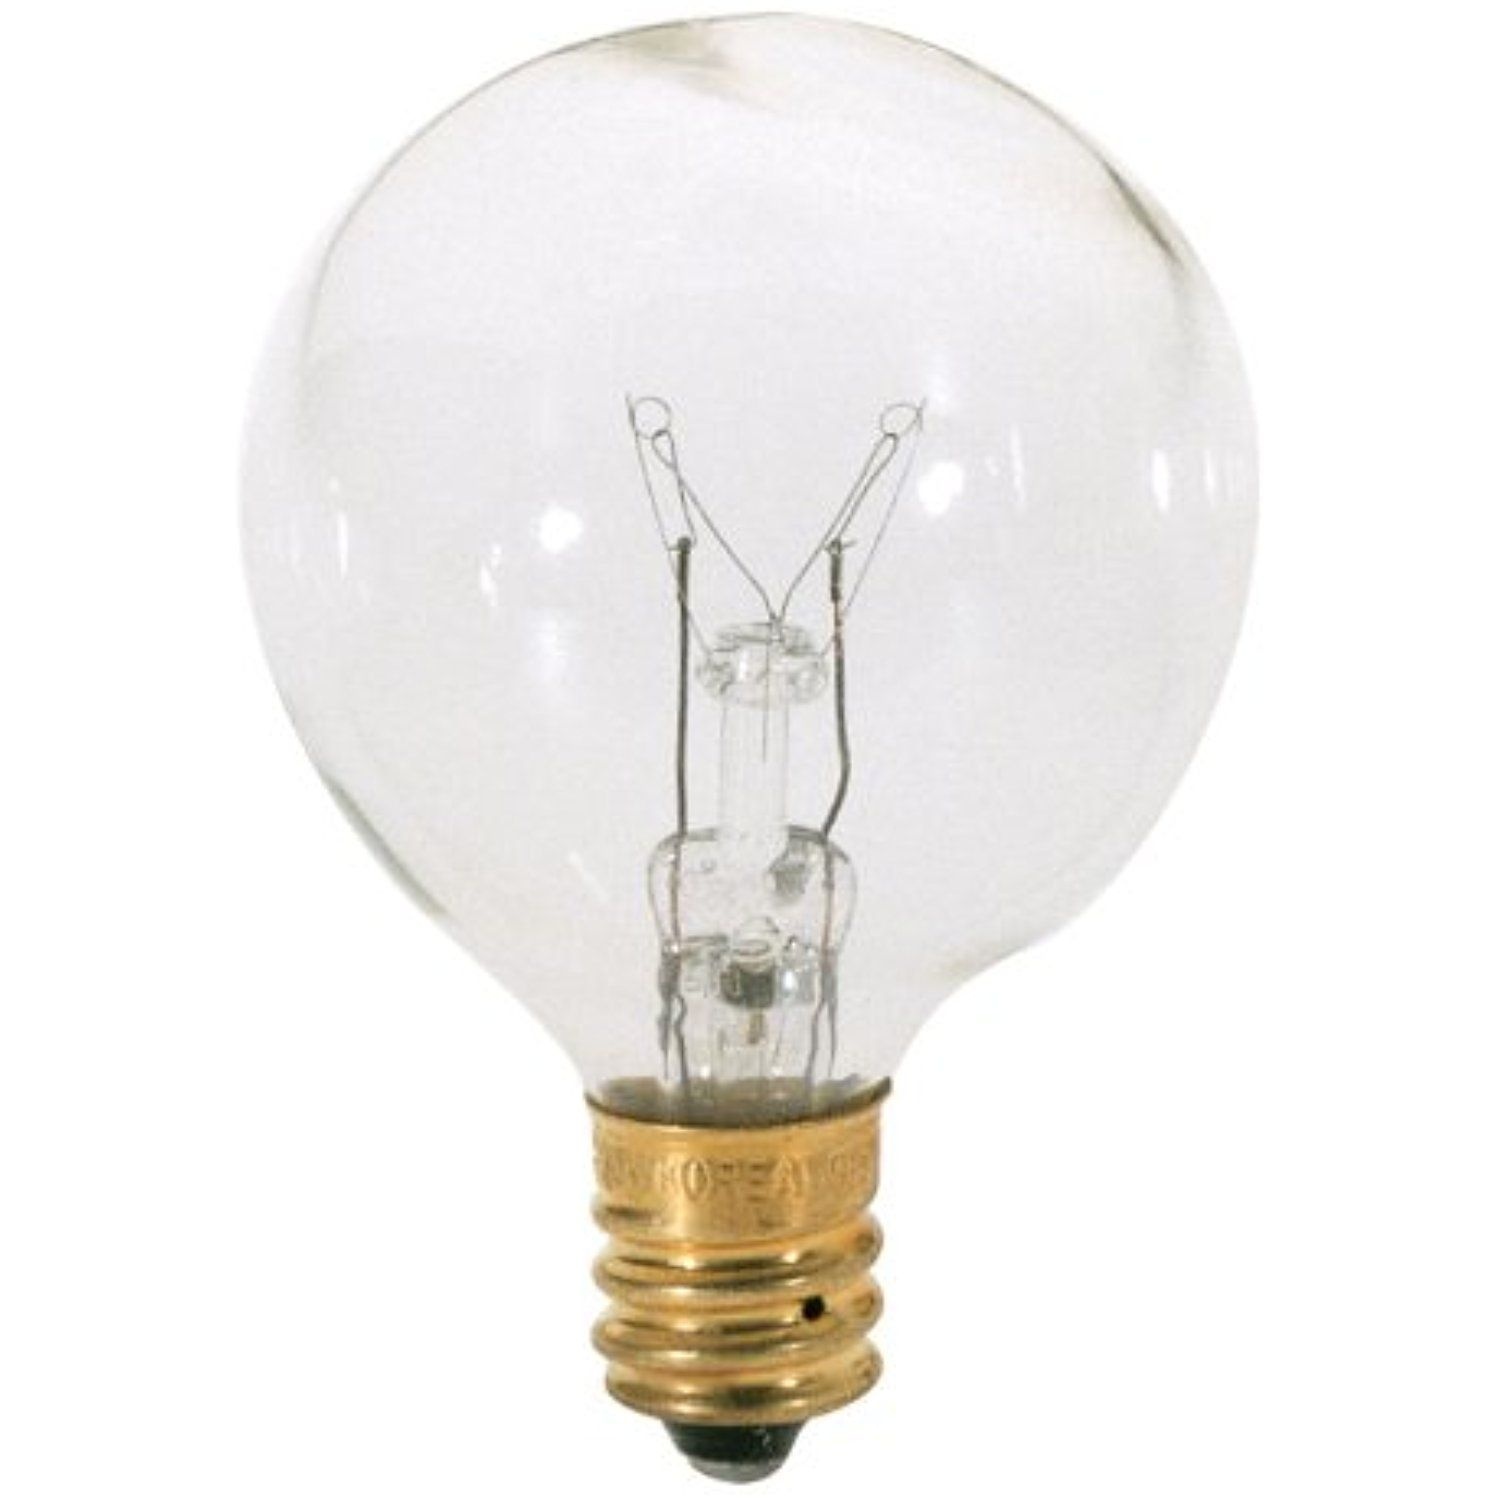 Satco S3846 120v Candelabra Base 25 Watt G12 5 Light Bulb Clear Read More At The Image Link This Is An Affiliate Link Bulb Candle Base Globe Light Bulbs